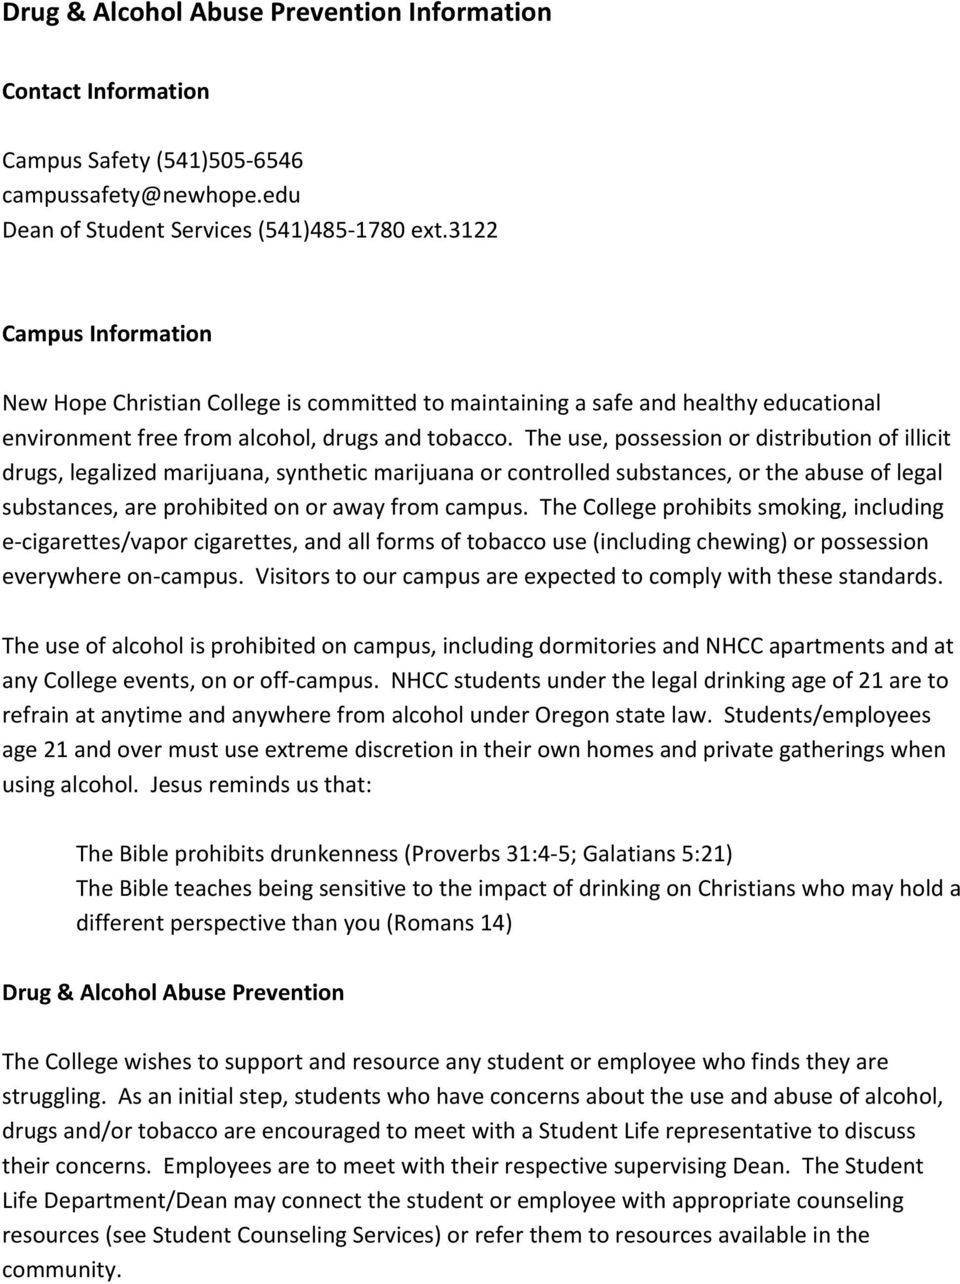 The use, possession or distribution of illicit drugs, legalized marijuana, synthetic marijuana or controlled substances, or the abuse of legal substances, are prohibited on or away from campus.